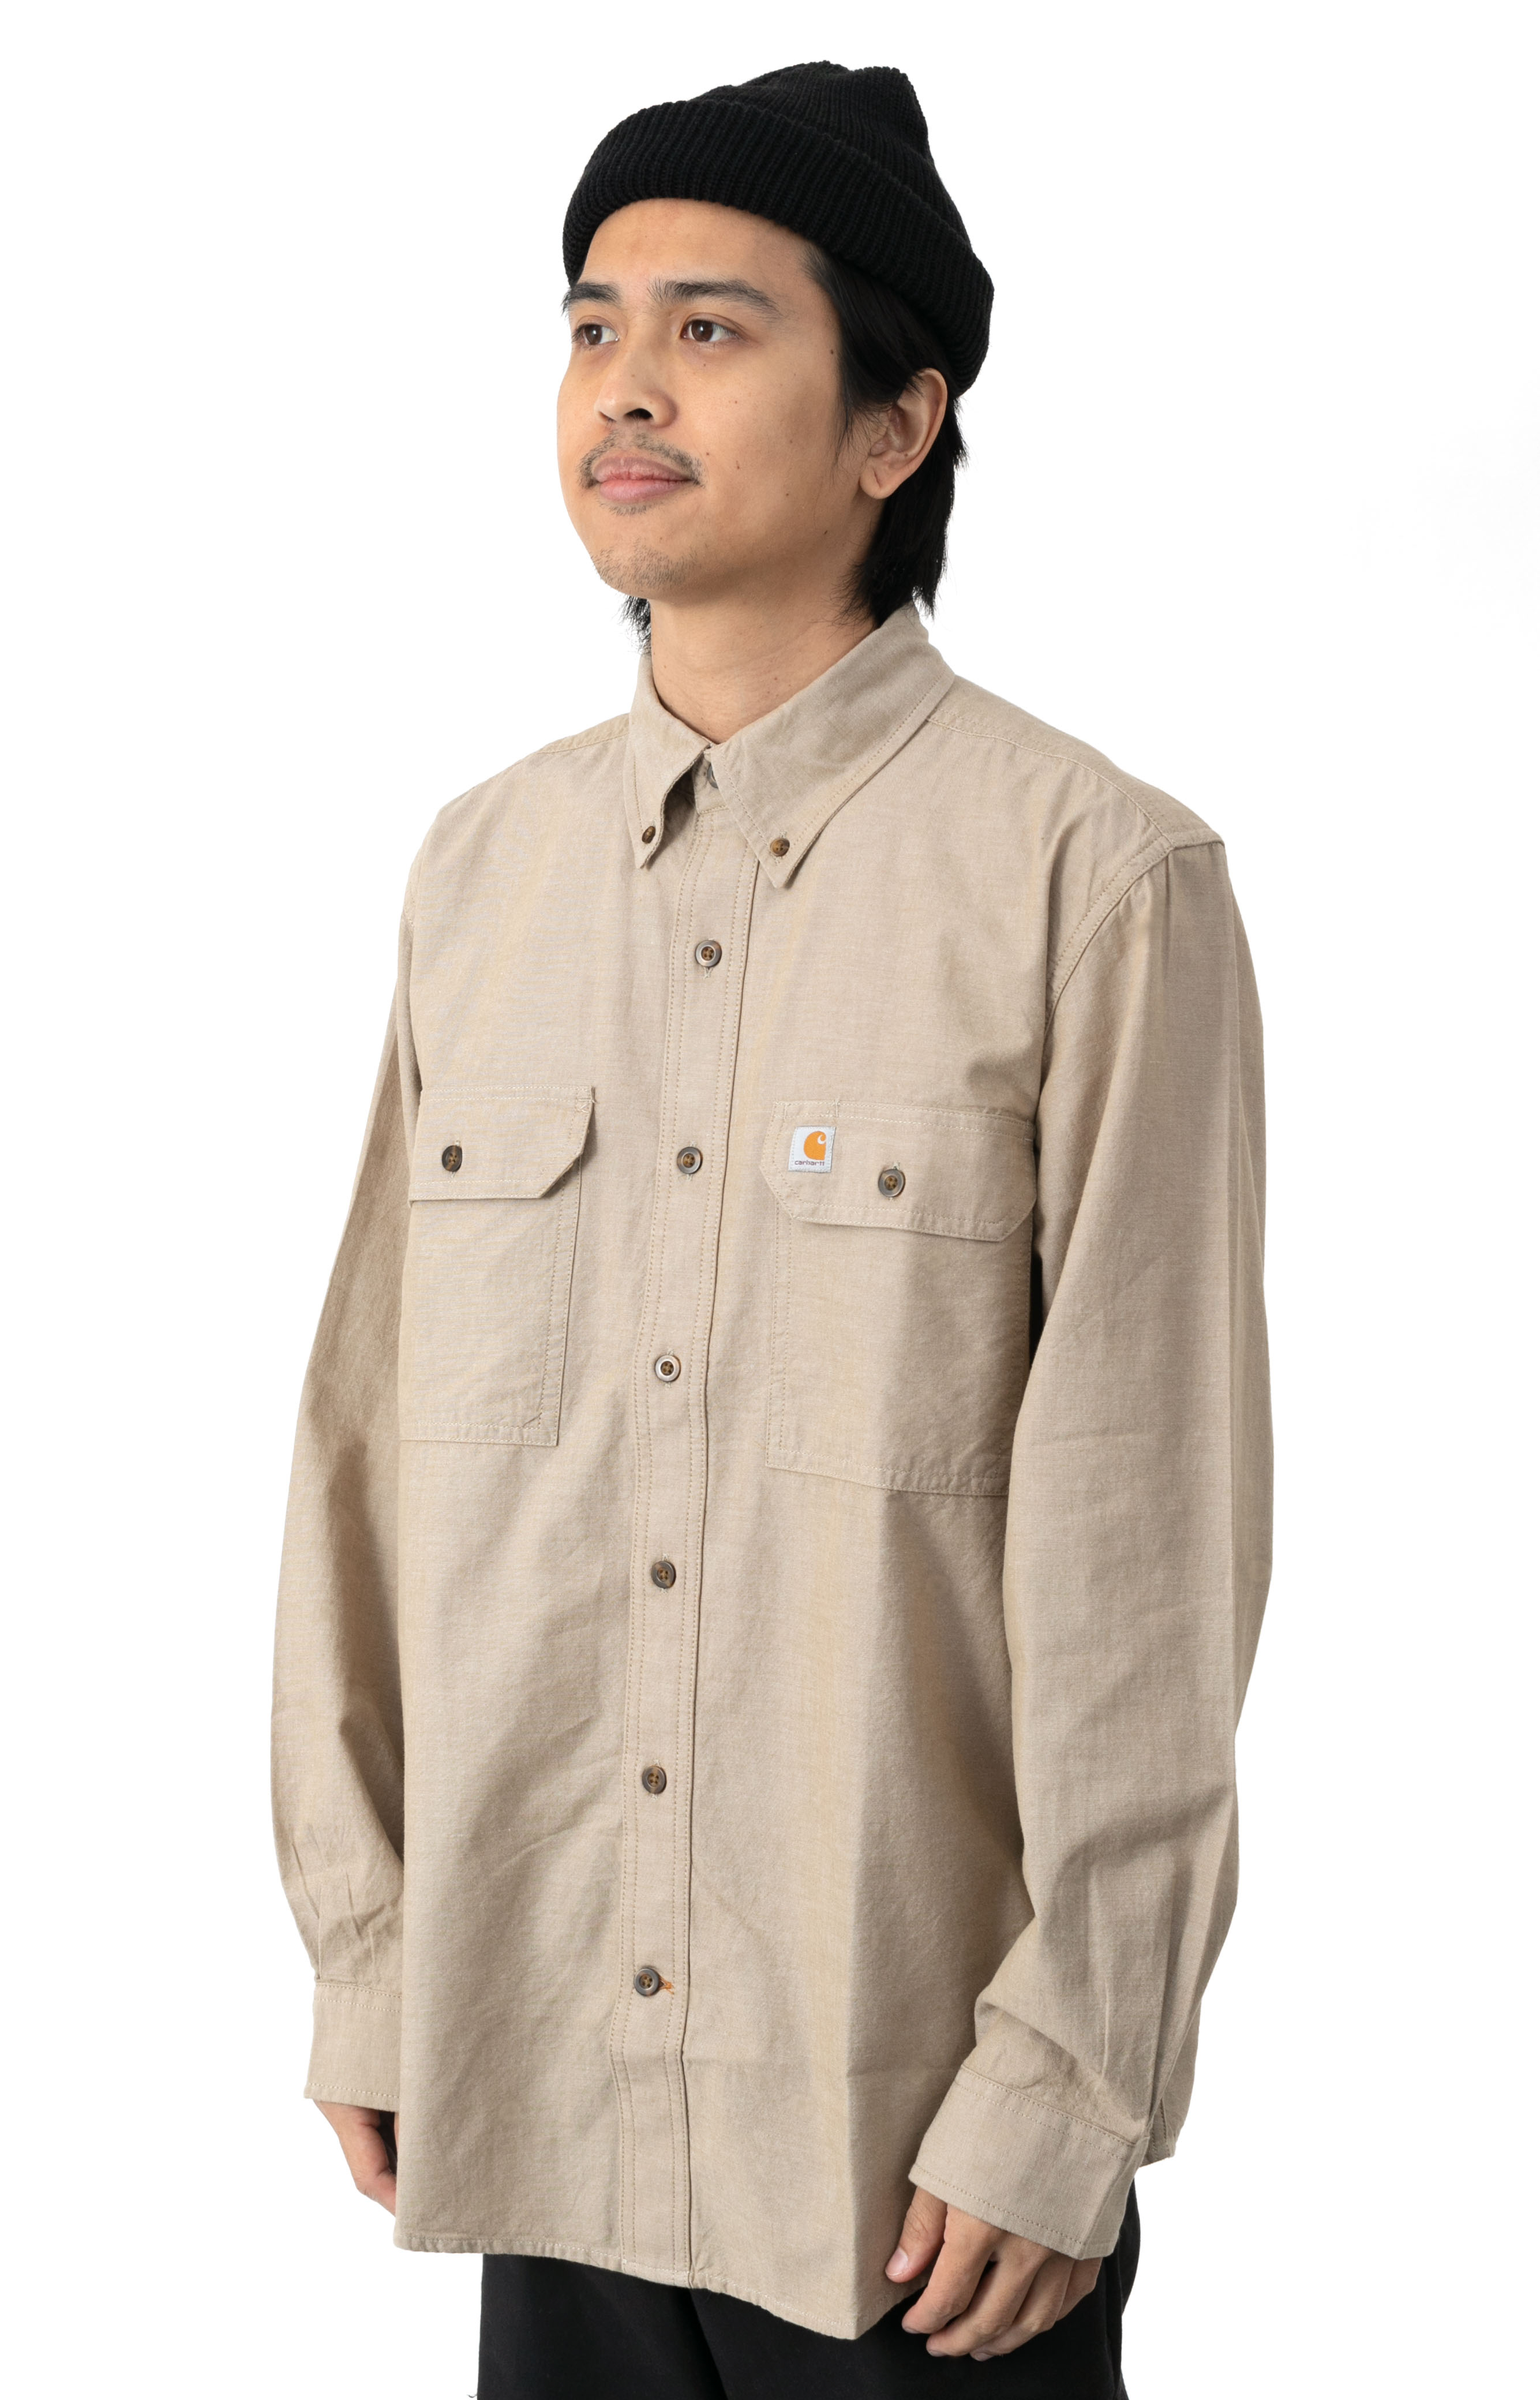 (104368) Original Fit Midweight L/S Button-Up Shirt - Dark Tan Chambray  2